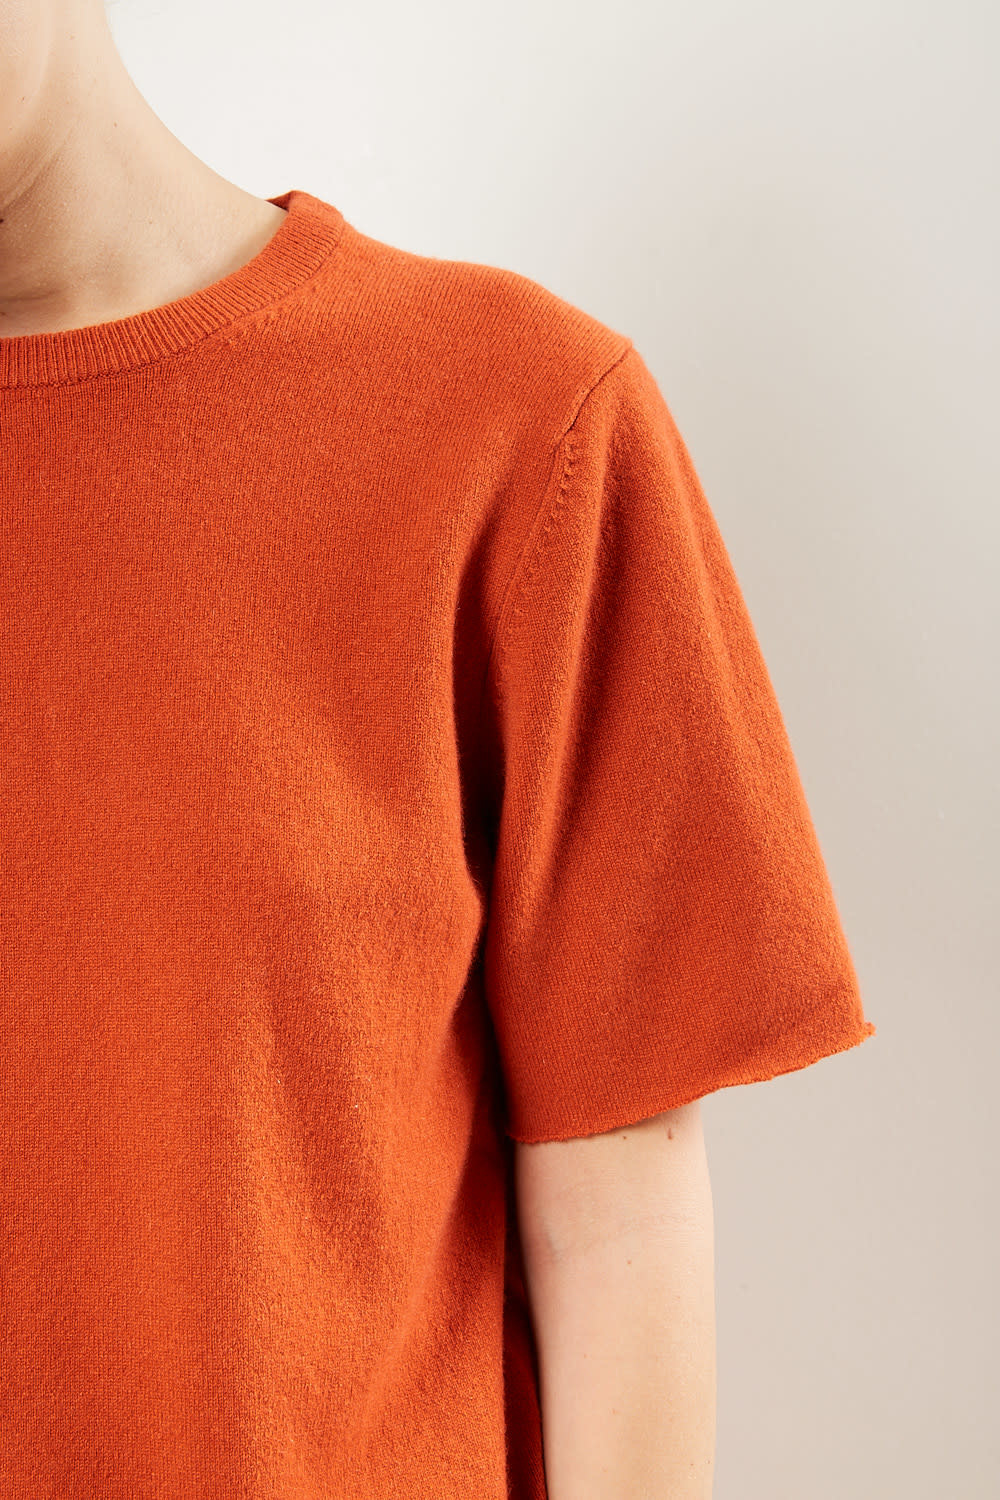 extreme cashmere - No64 classic unisex tshirt dark orange